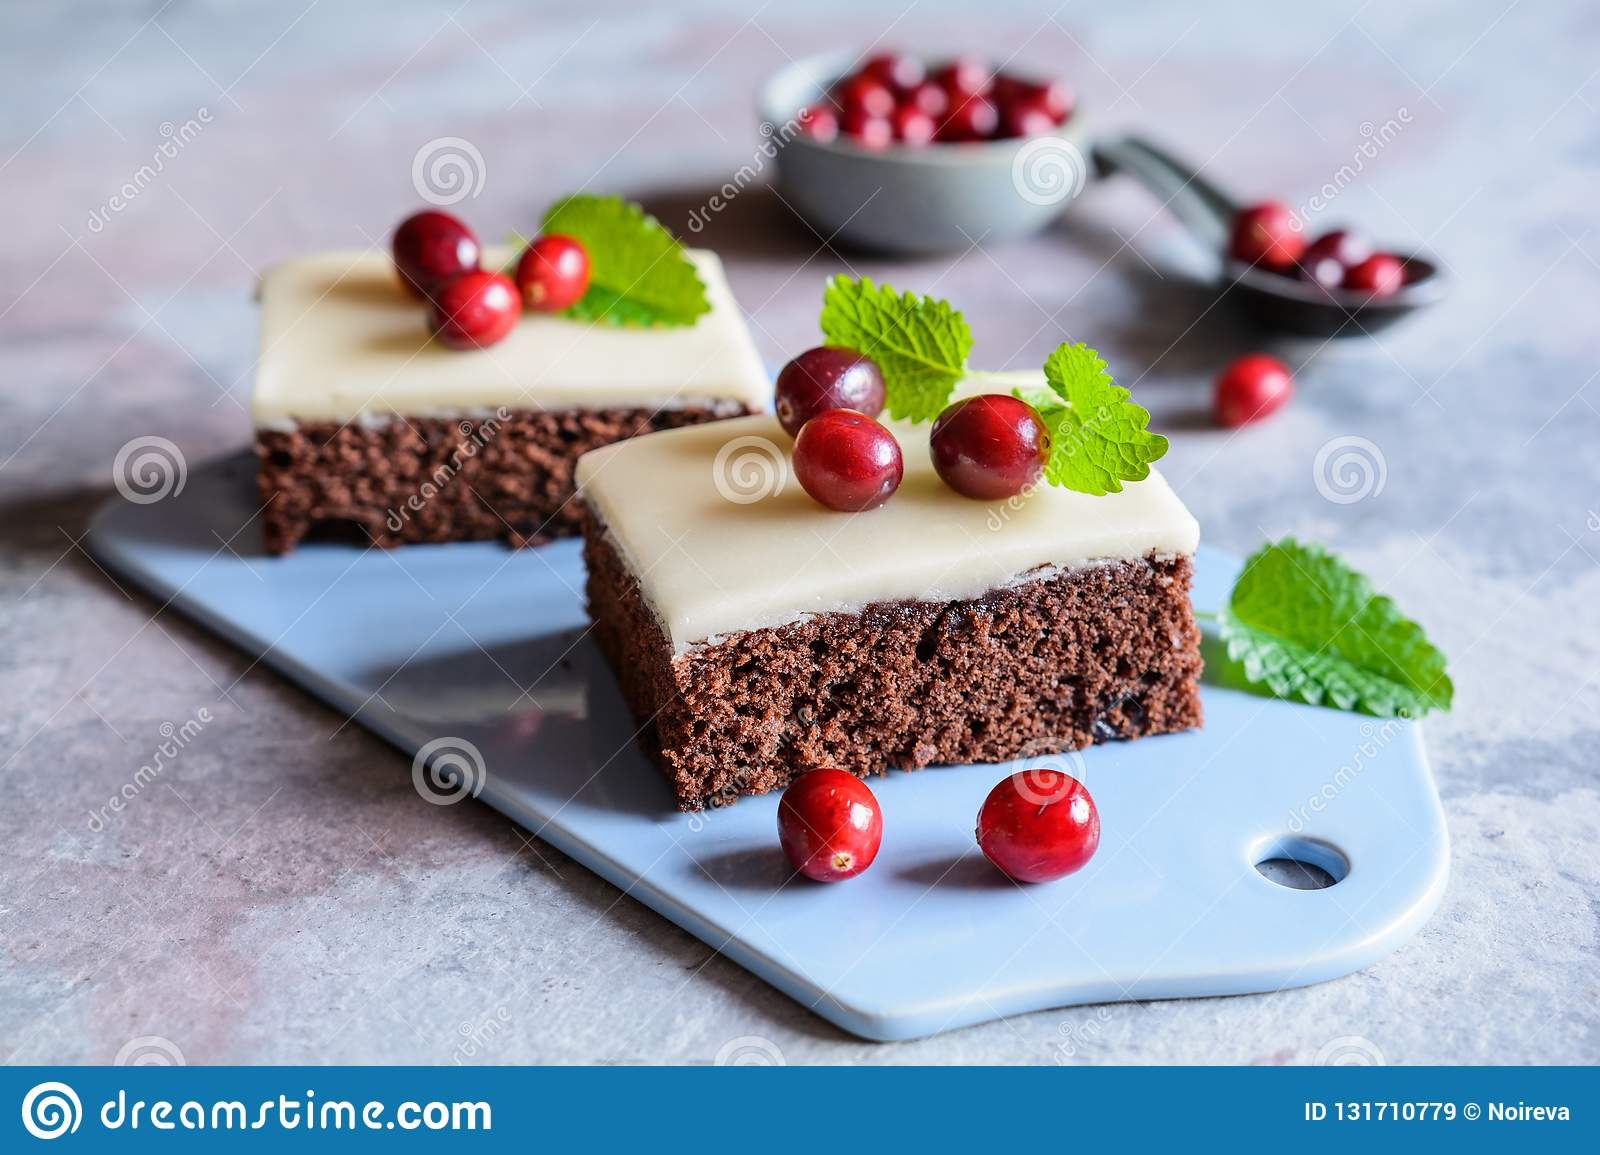 Cocoa cake with cranberries and marzipan glaze